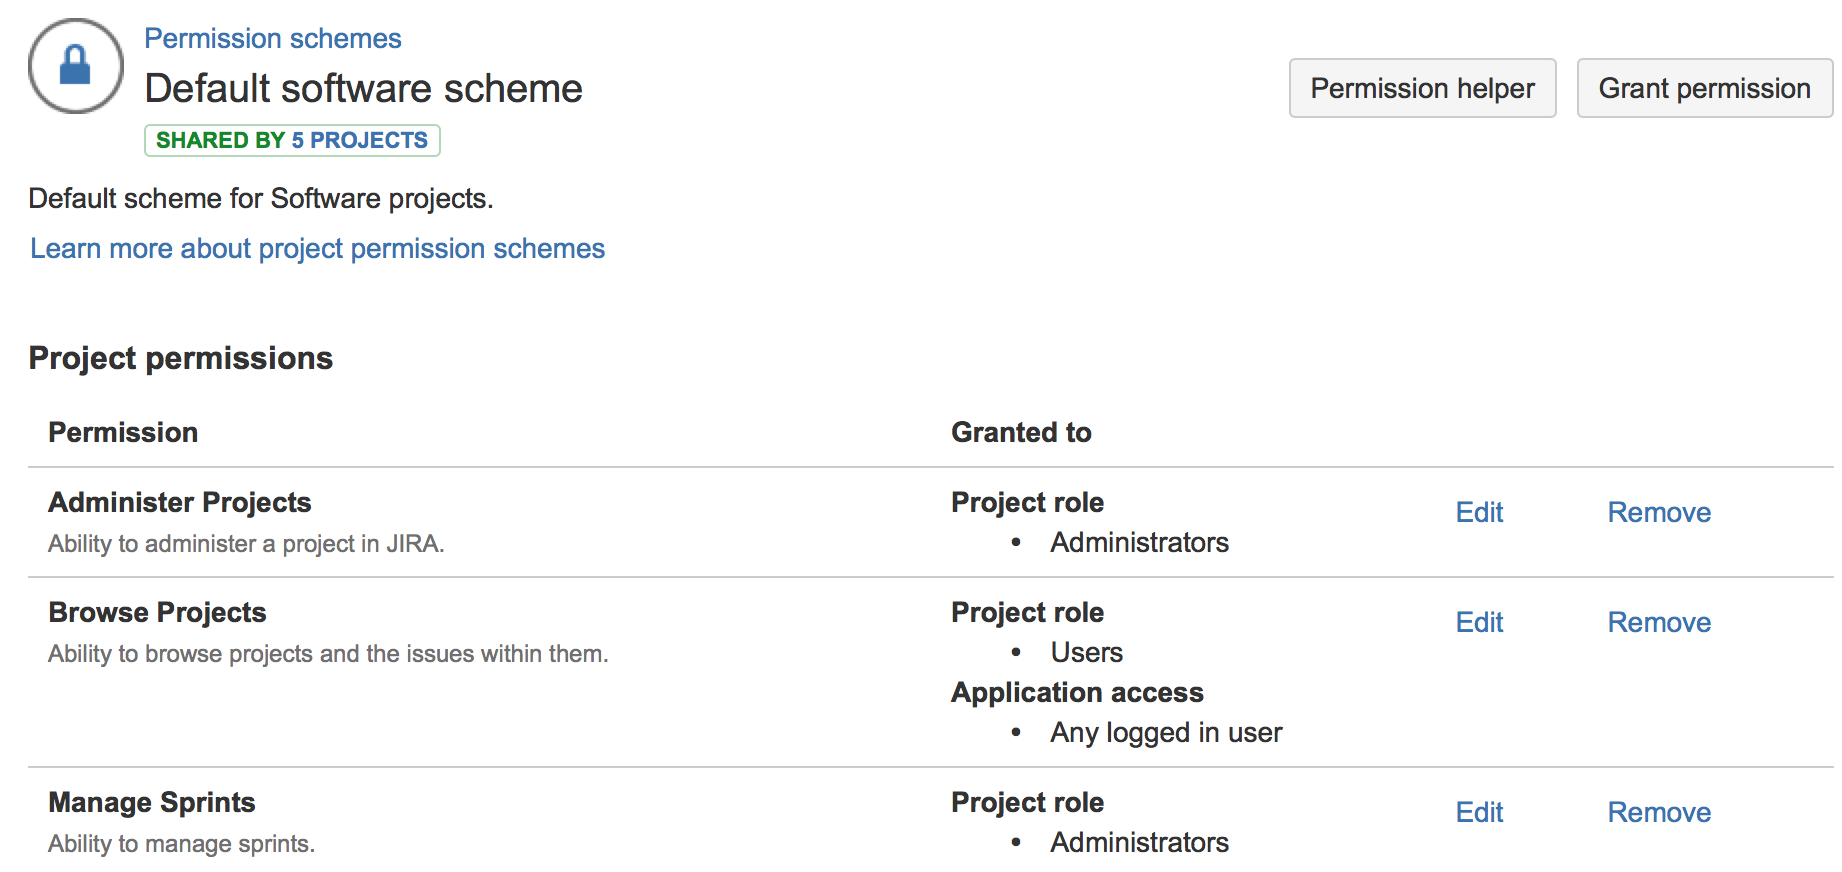 JIRA Default software scheme